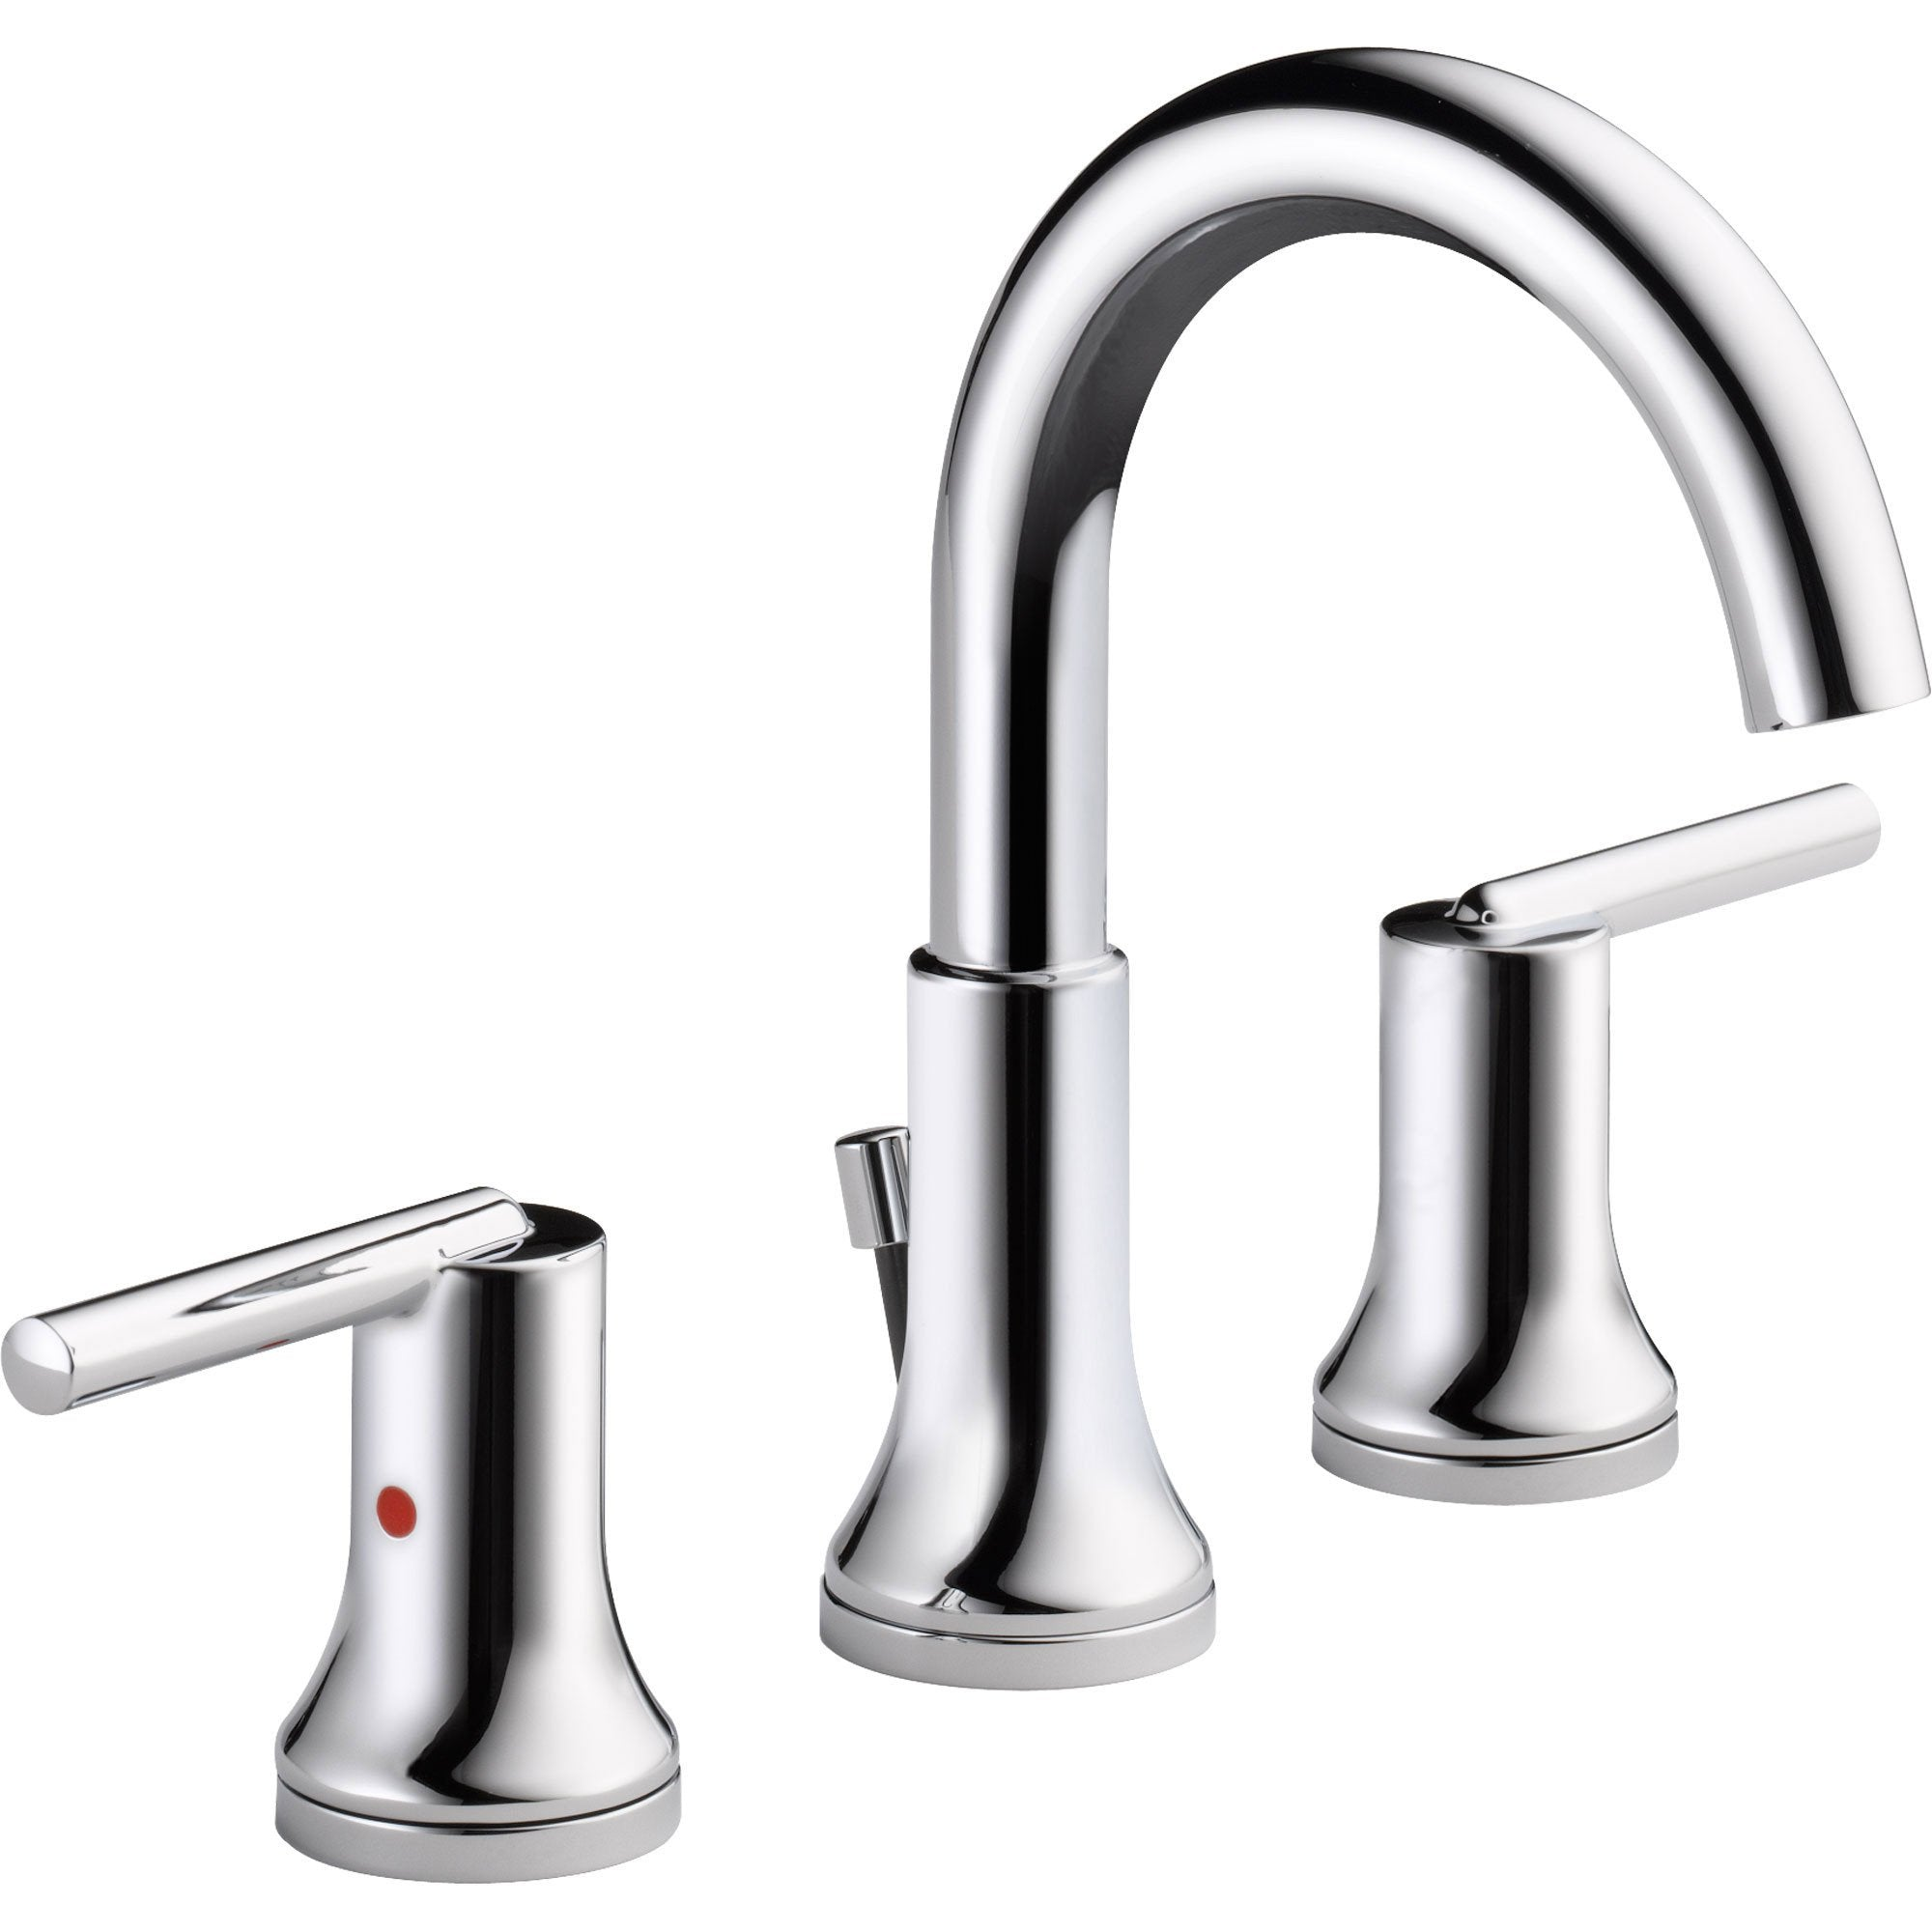 Delta Trinsic Modern Chrome Finish Widespread High Arc Bathroom Faucet 614922